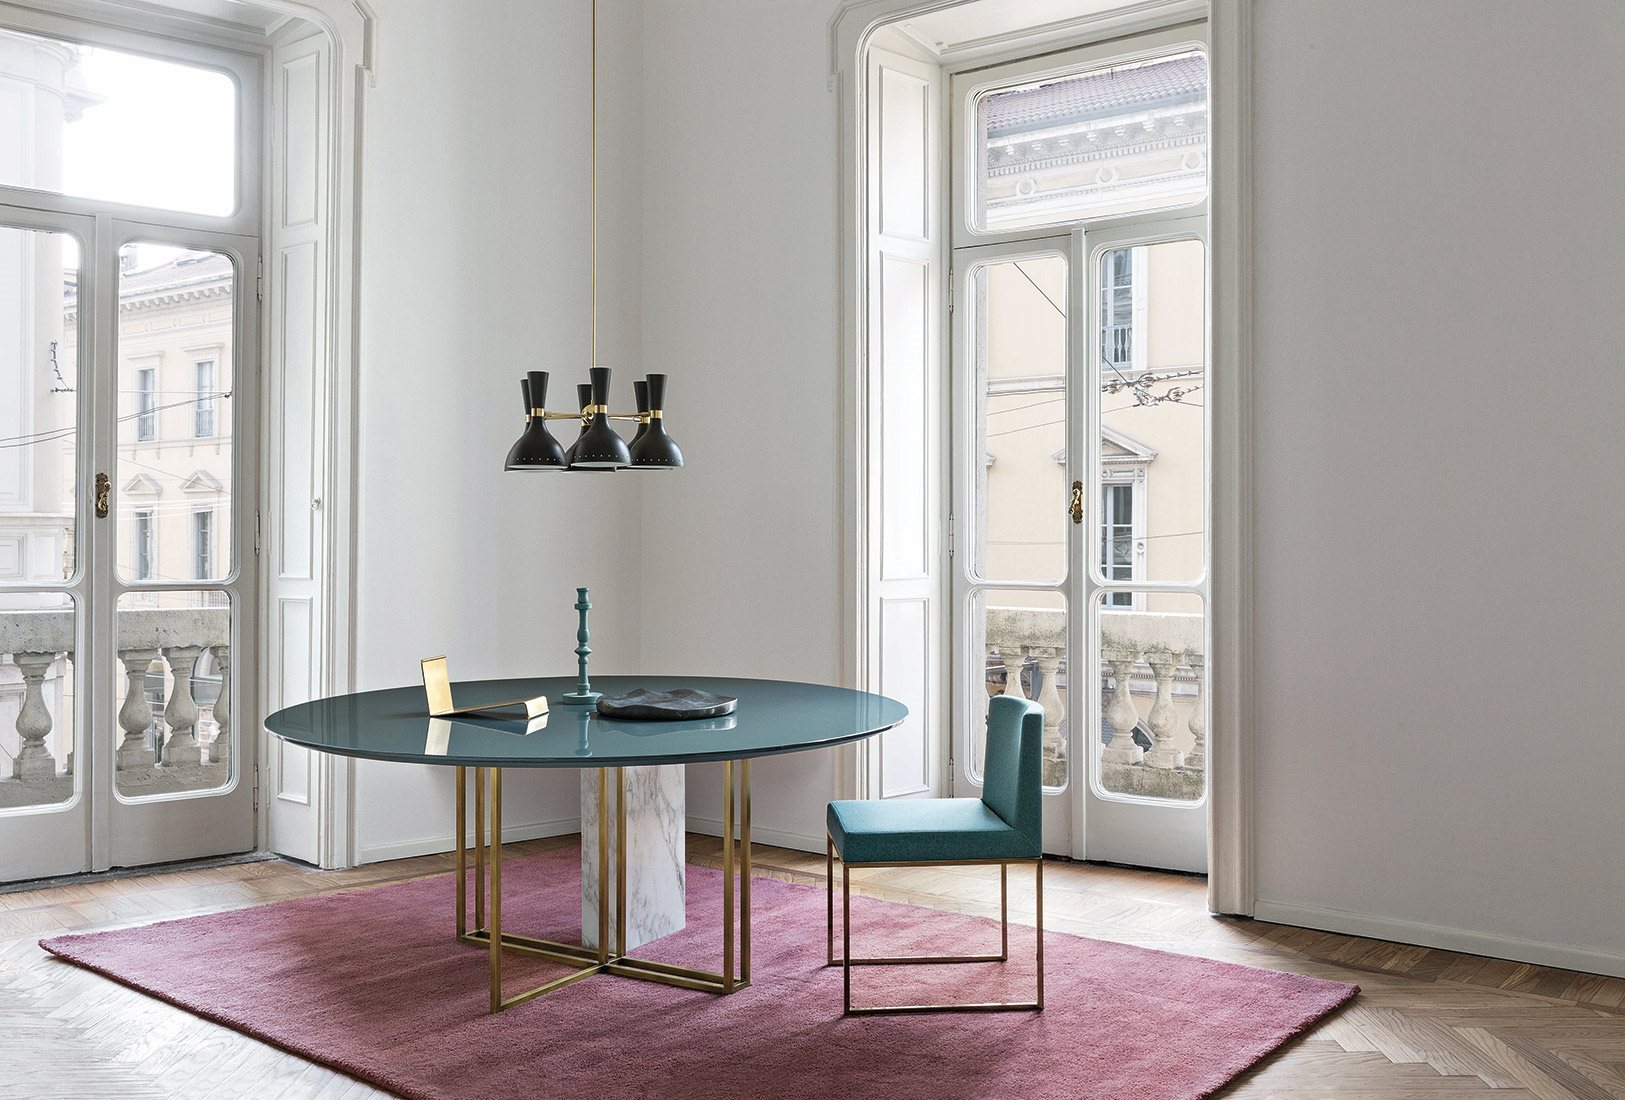 Plinto Round Large Dining Table - Dining tables with metal base with plinth. Tops in different models and dimensions. Finishes for metal base - black varnishes - bronzed brass Finishes for plinth - wood veneer - matt or glossy lacquer - marble Finishes for tops - wood veneer - matt or glossy lacquer - marble   Matter of Stuff